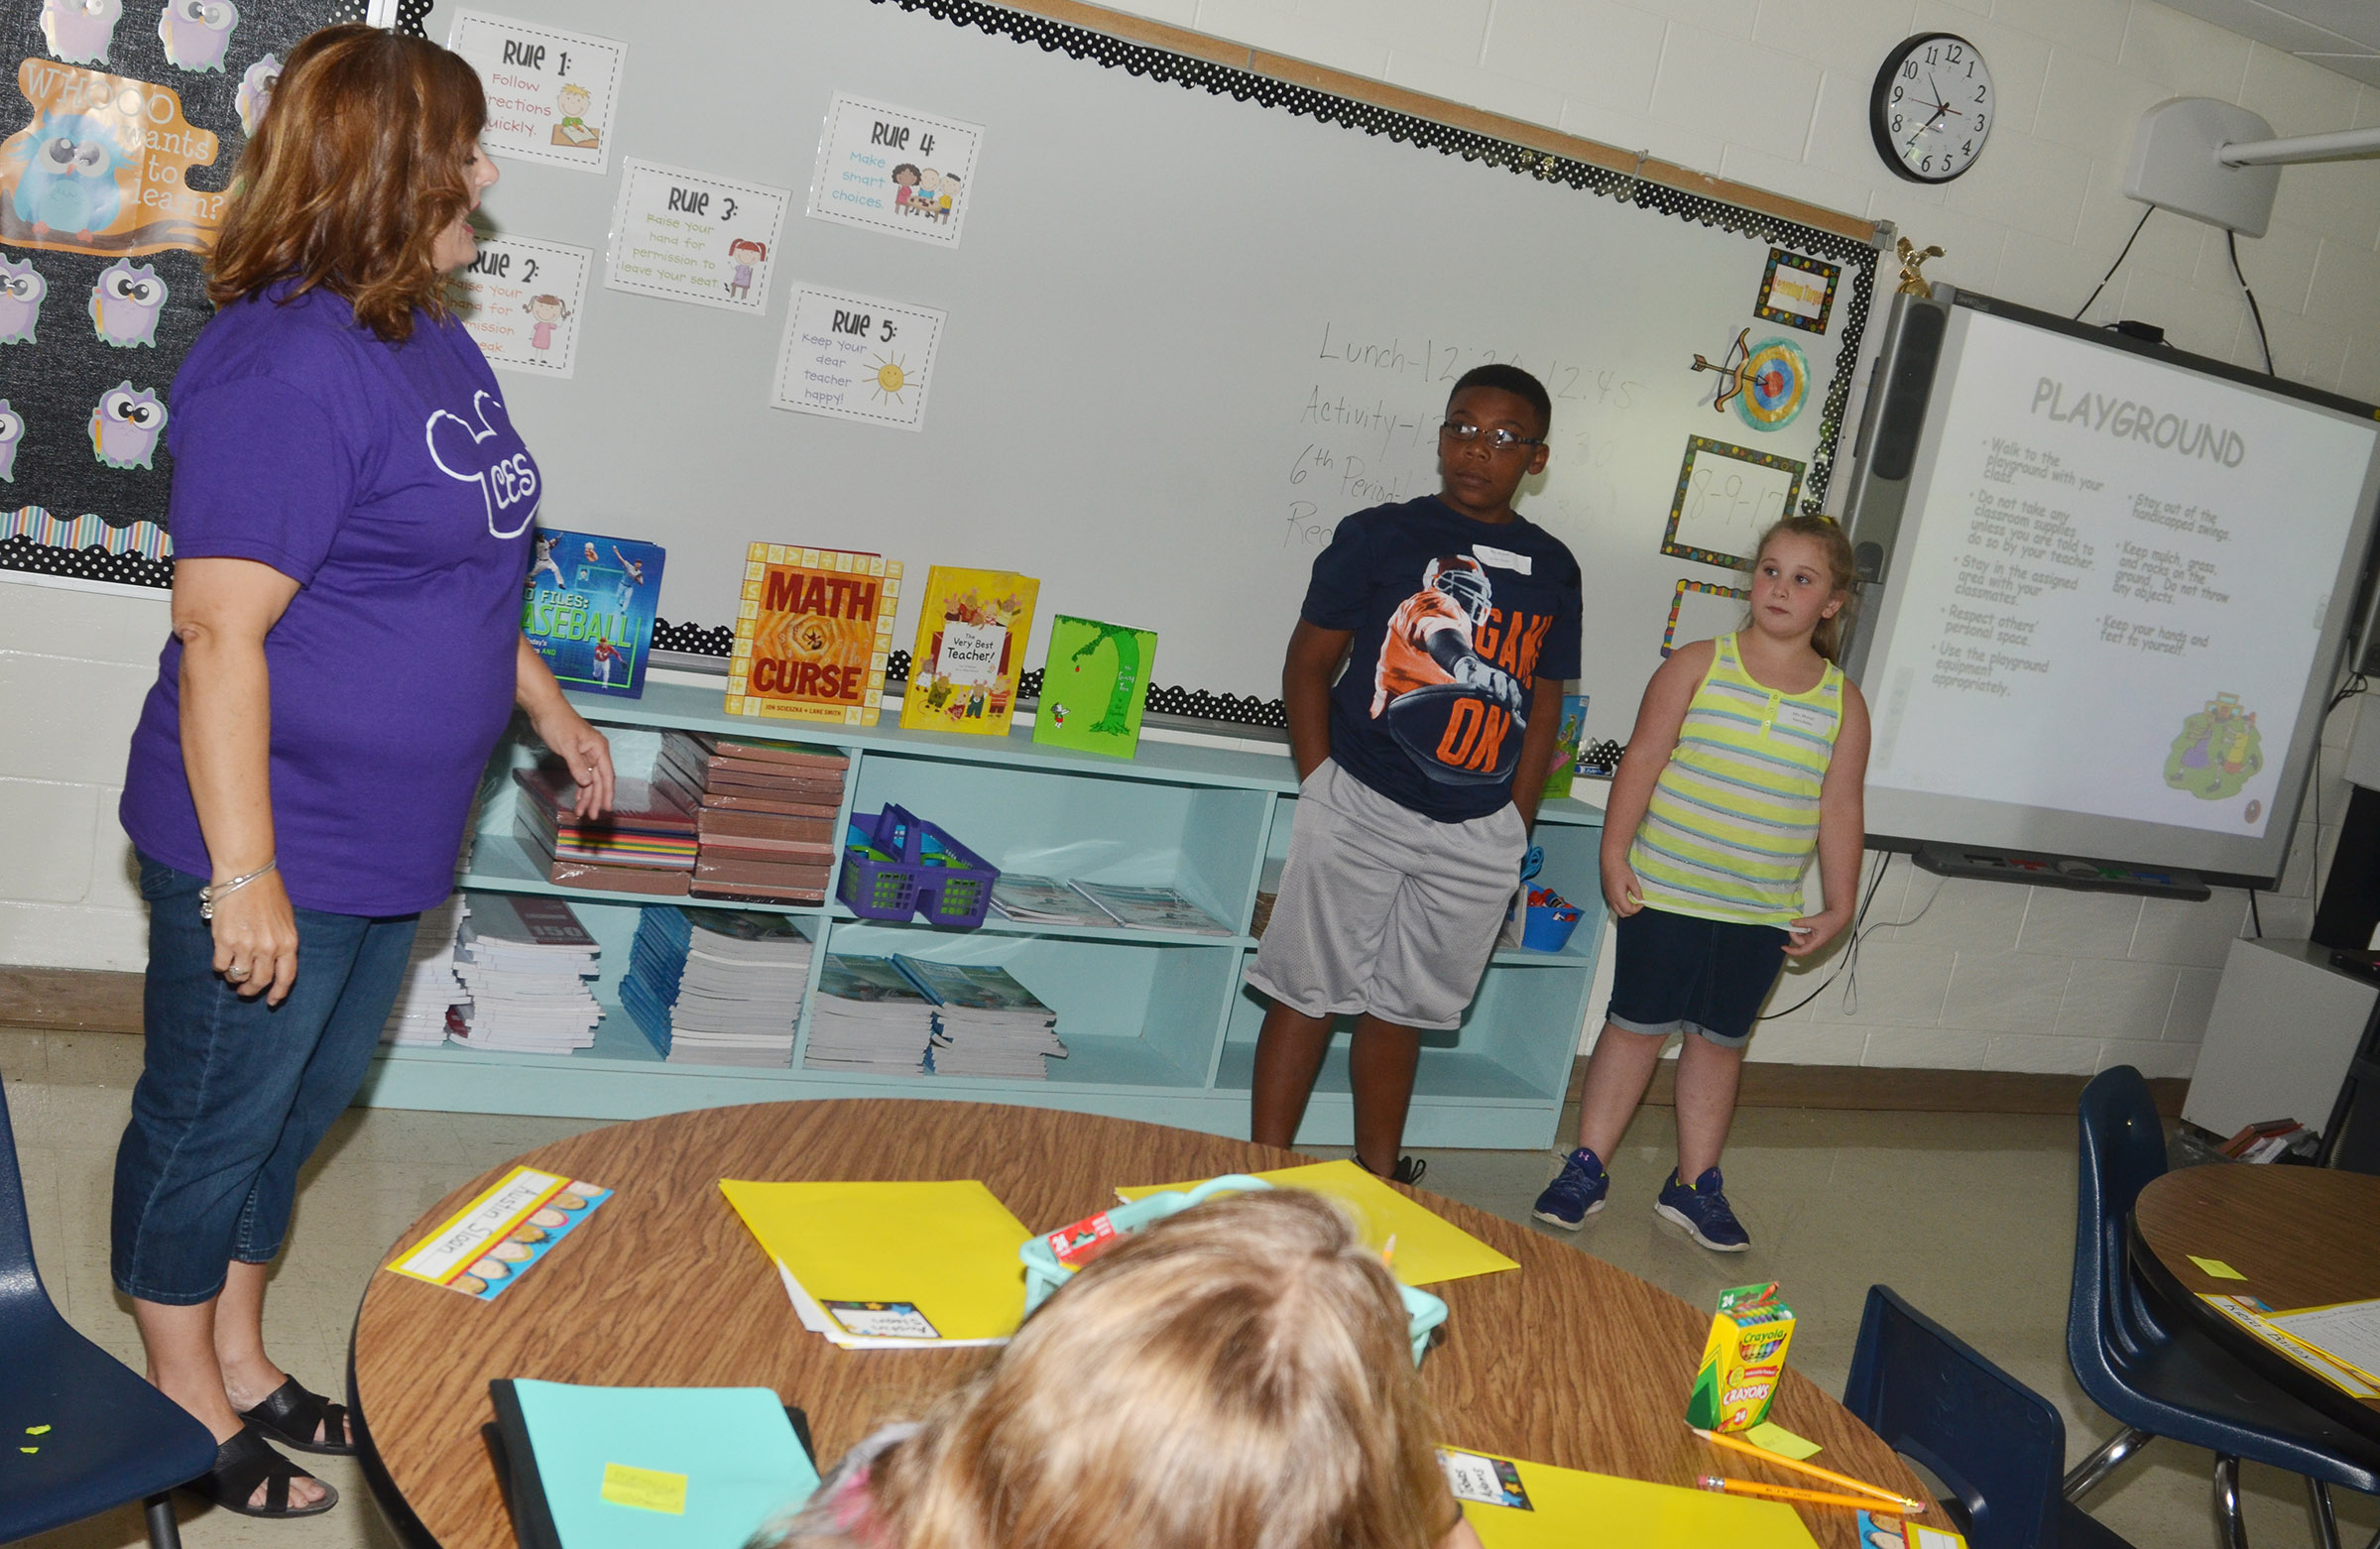 CES fourth-graders Austin Sloan and Kiera Bailey help teacher Garnetta Murrell explain the playground rules to their classmates.